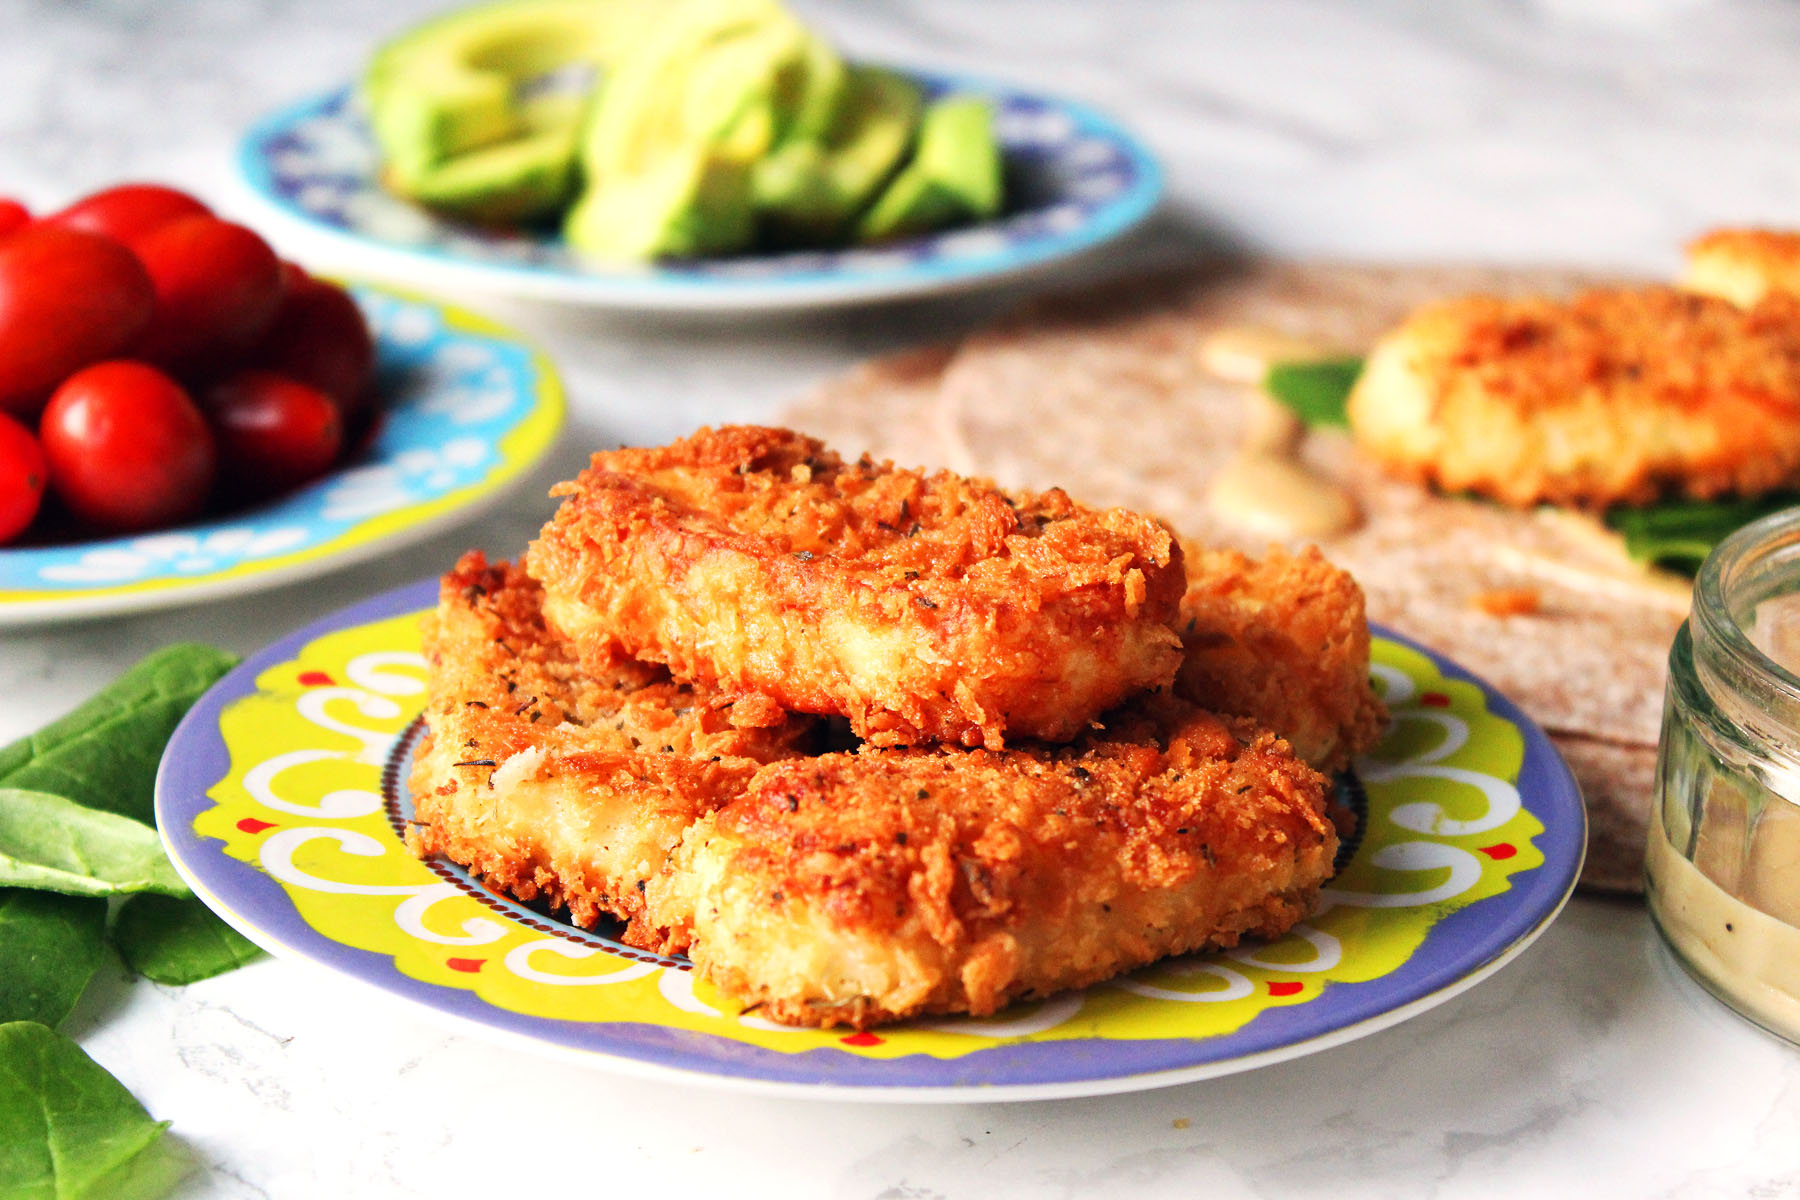 Crispy Fried Halloumi